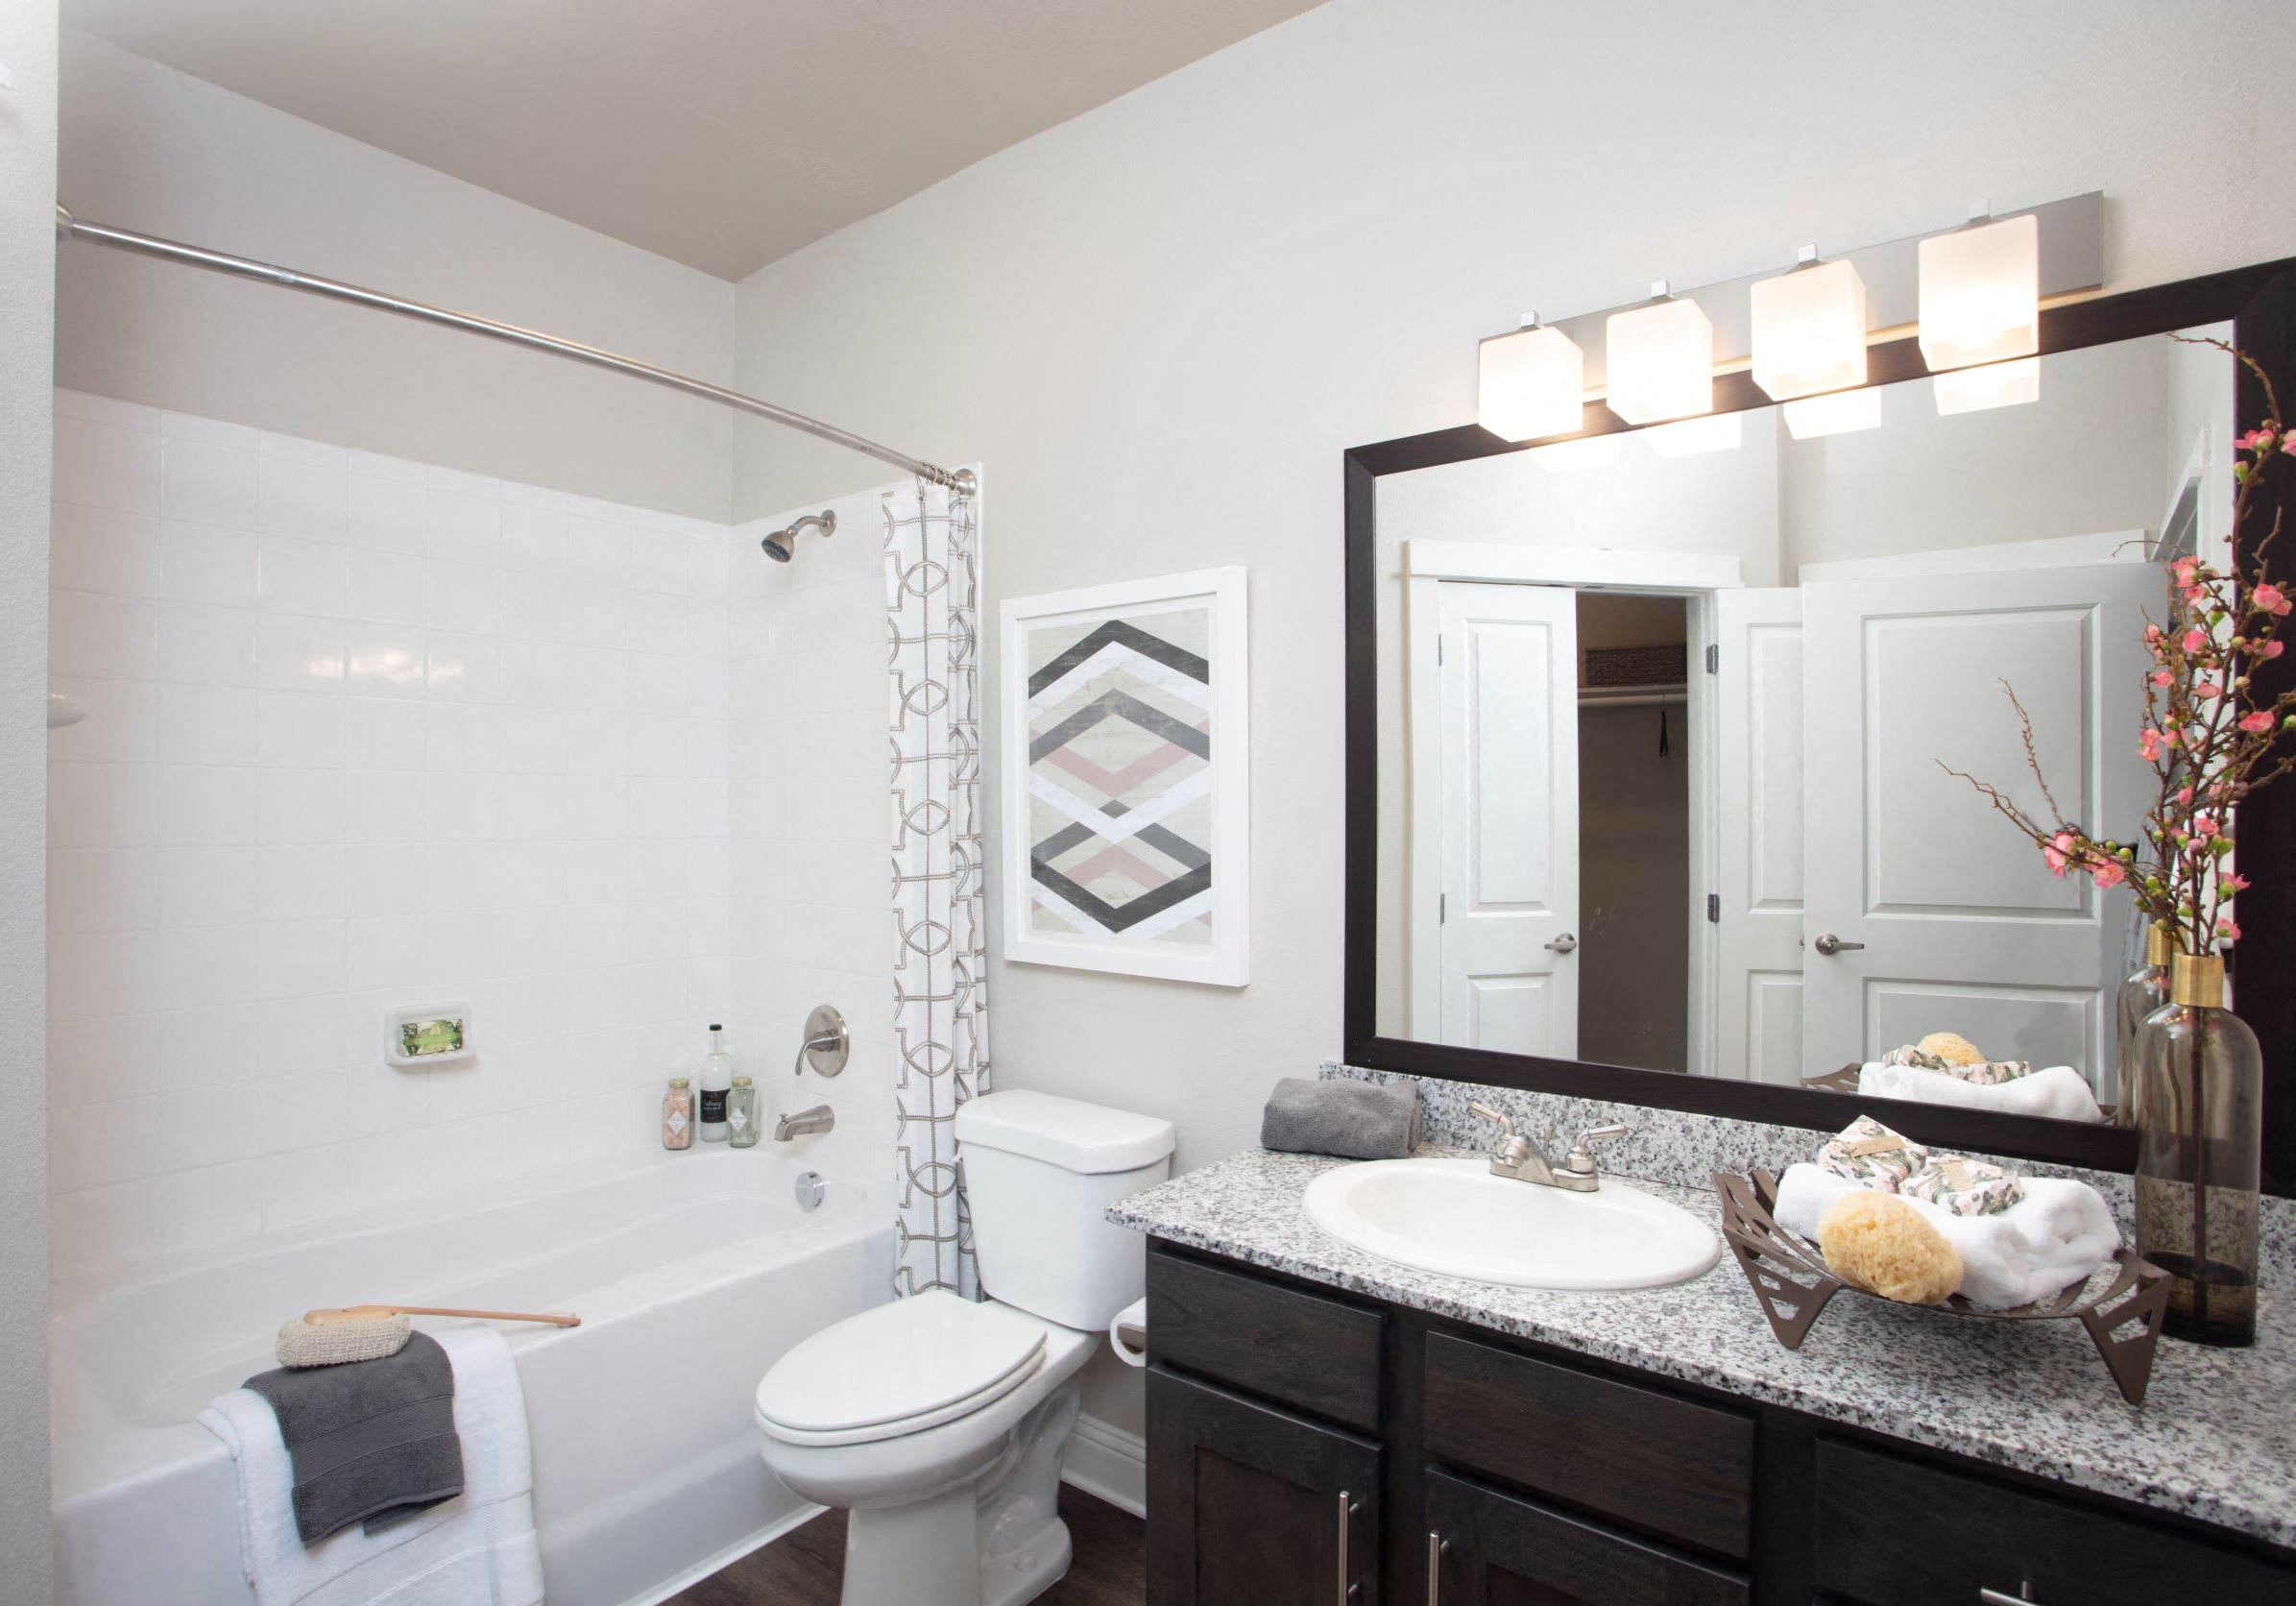 Bathroom at Legacy at 2020